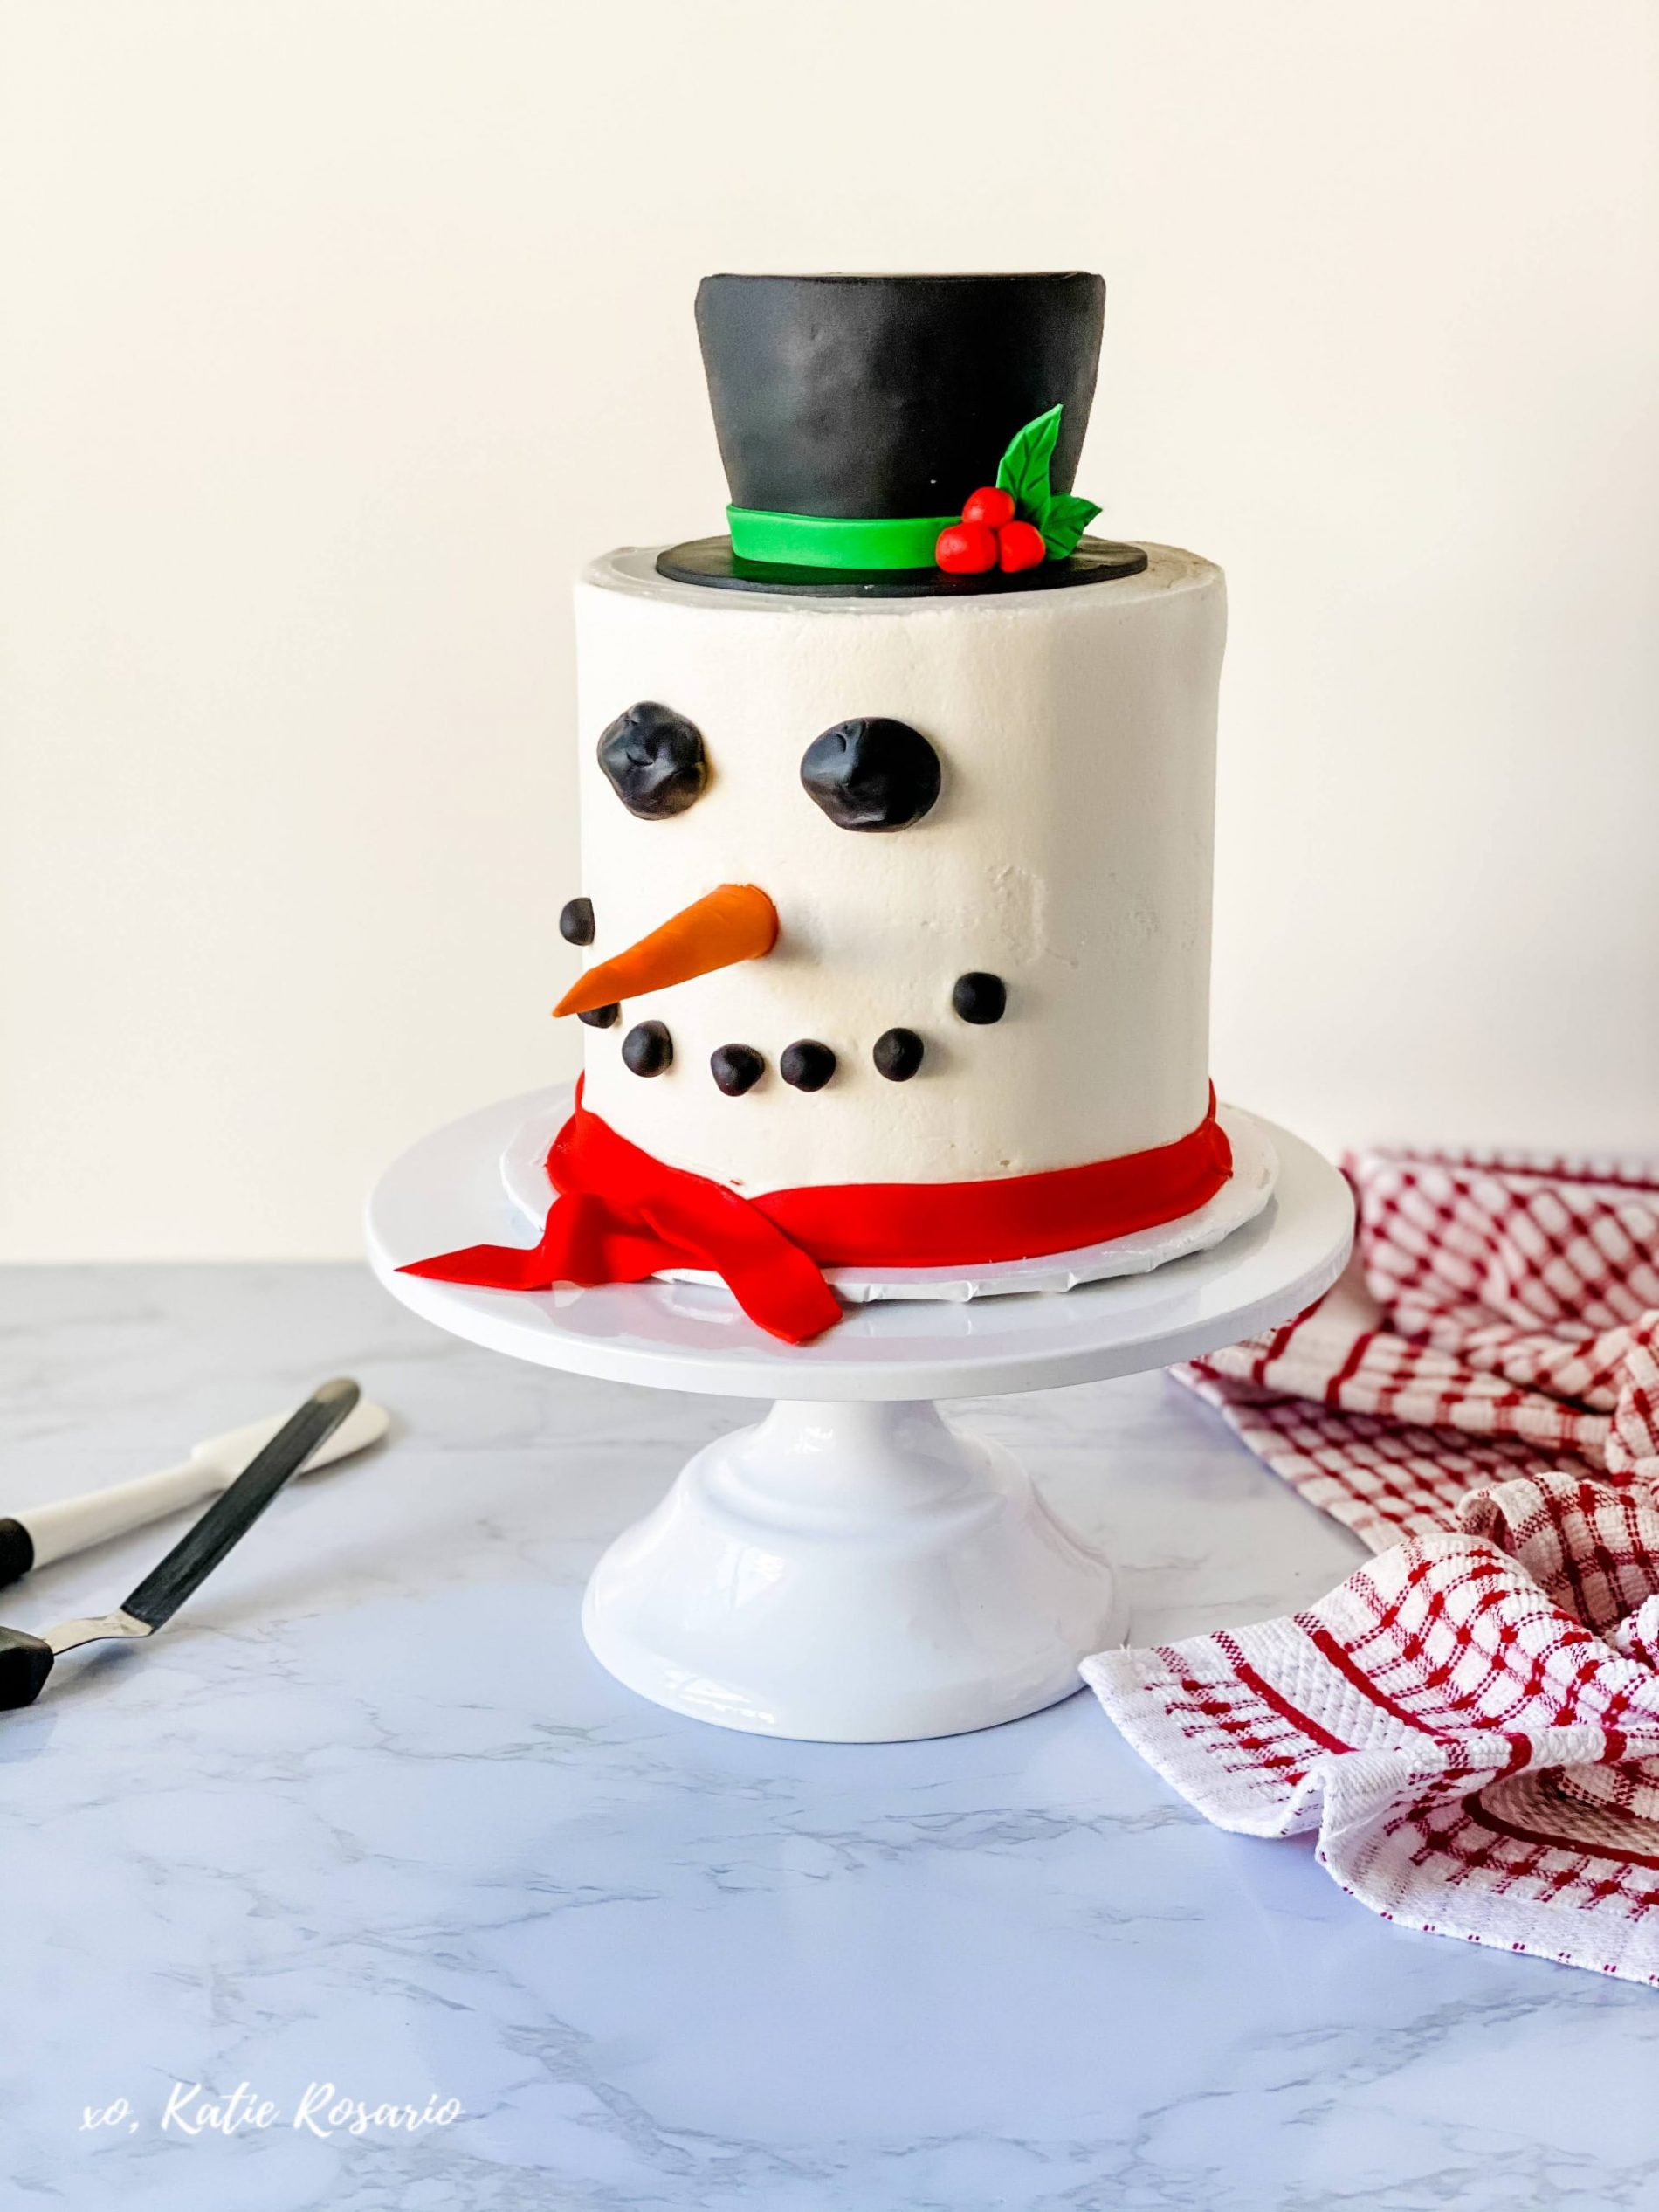 Learn how to make this adorable Snowman Cake for the holidays. This Snowman cake is made of fluffy vanilla cake layers filled with creamy vanilla buttercream and cute fondant decorations. Here you'll learn how to make fondant decorations that'll surely impress your friends and family. #xokatierosario #snowmancake #christmascake #cakedecoratingforbeginners #cakedecoratingtips